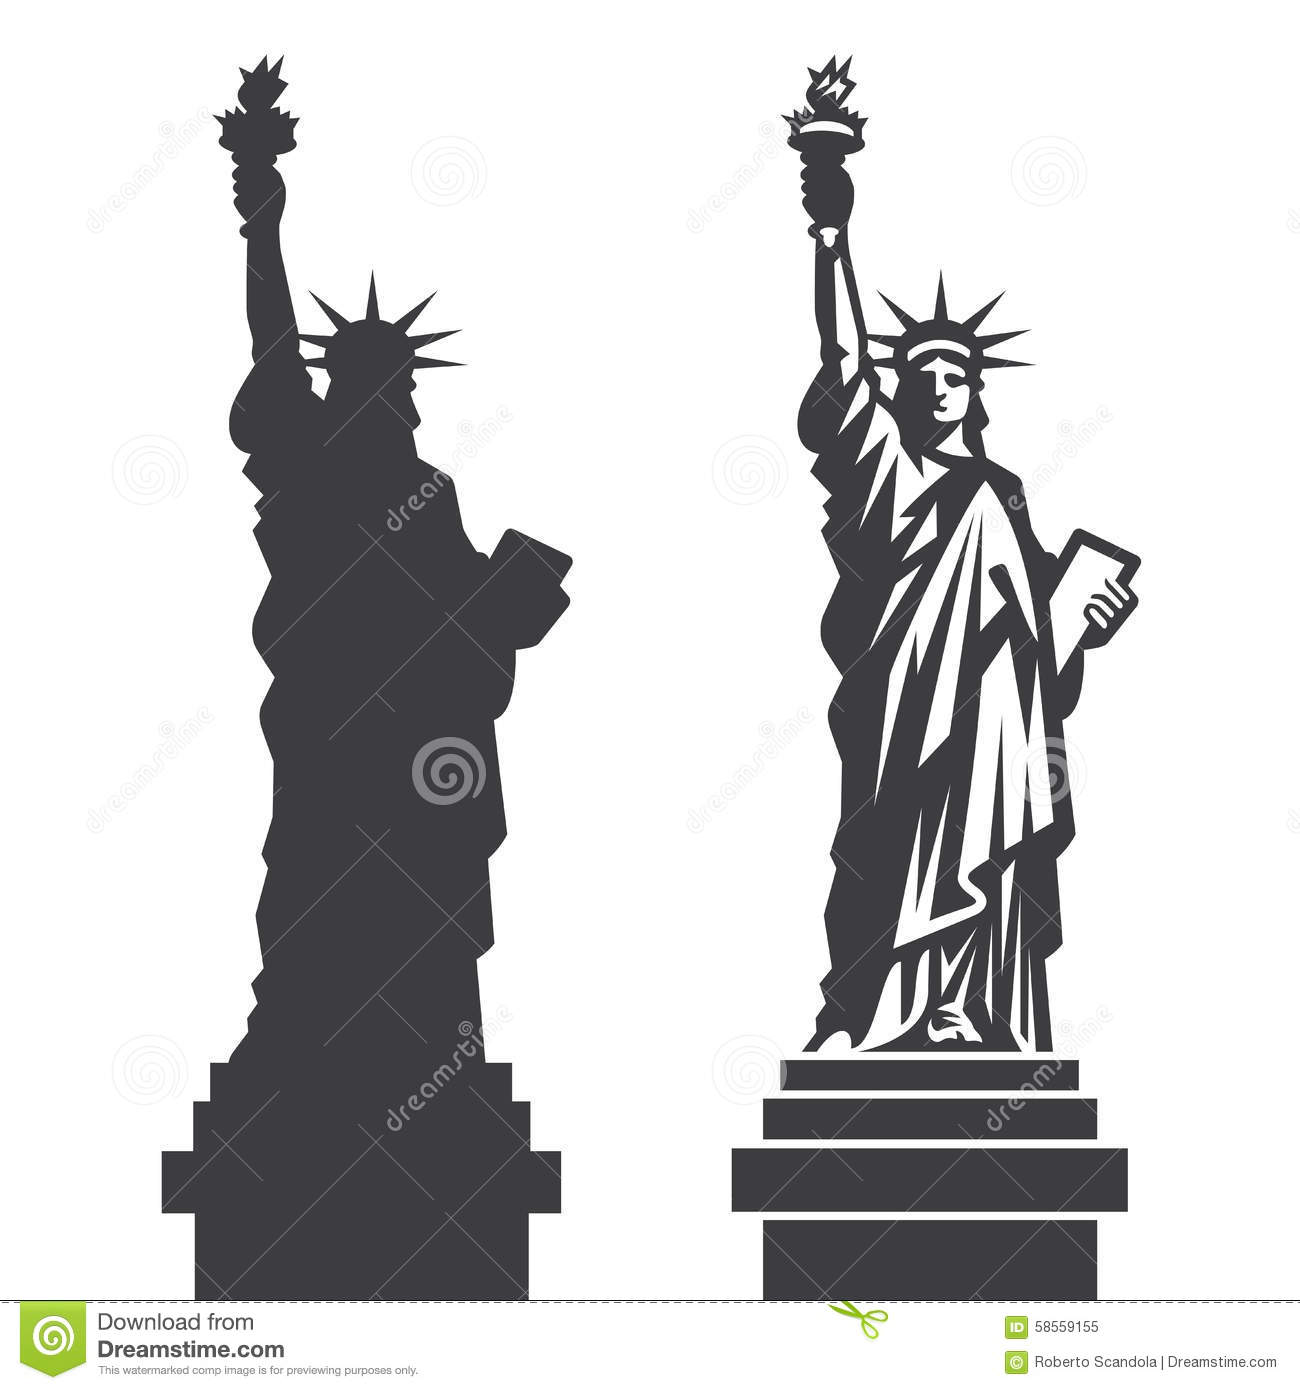 New York Statue Of Liberty Vector Silhouette Stock Vector - Image ...